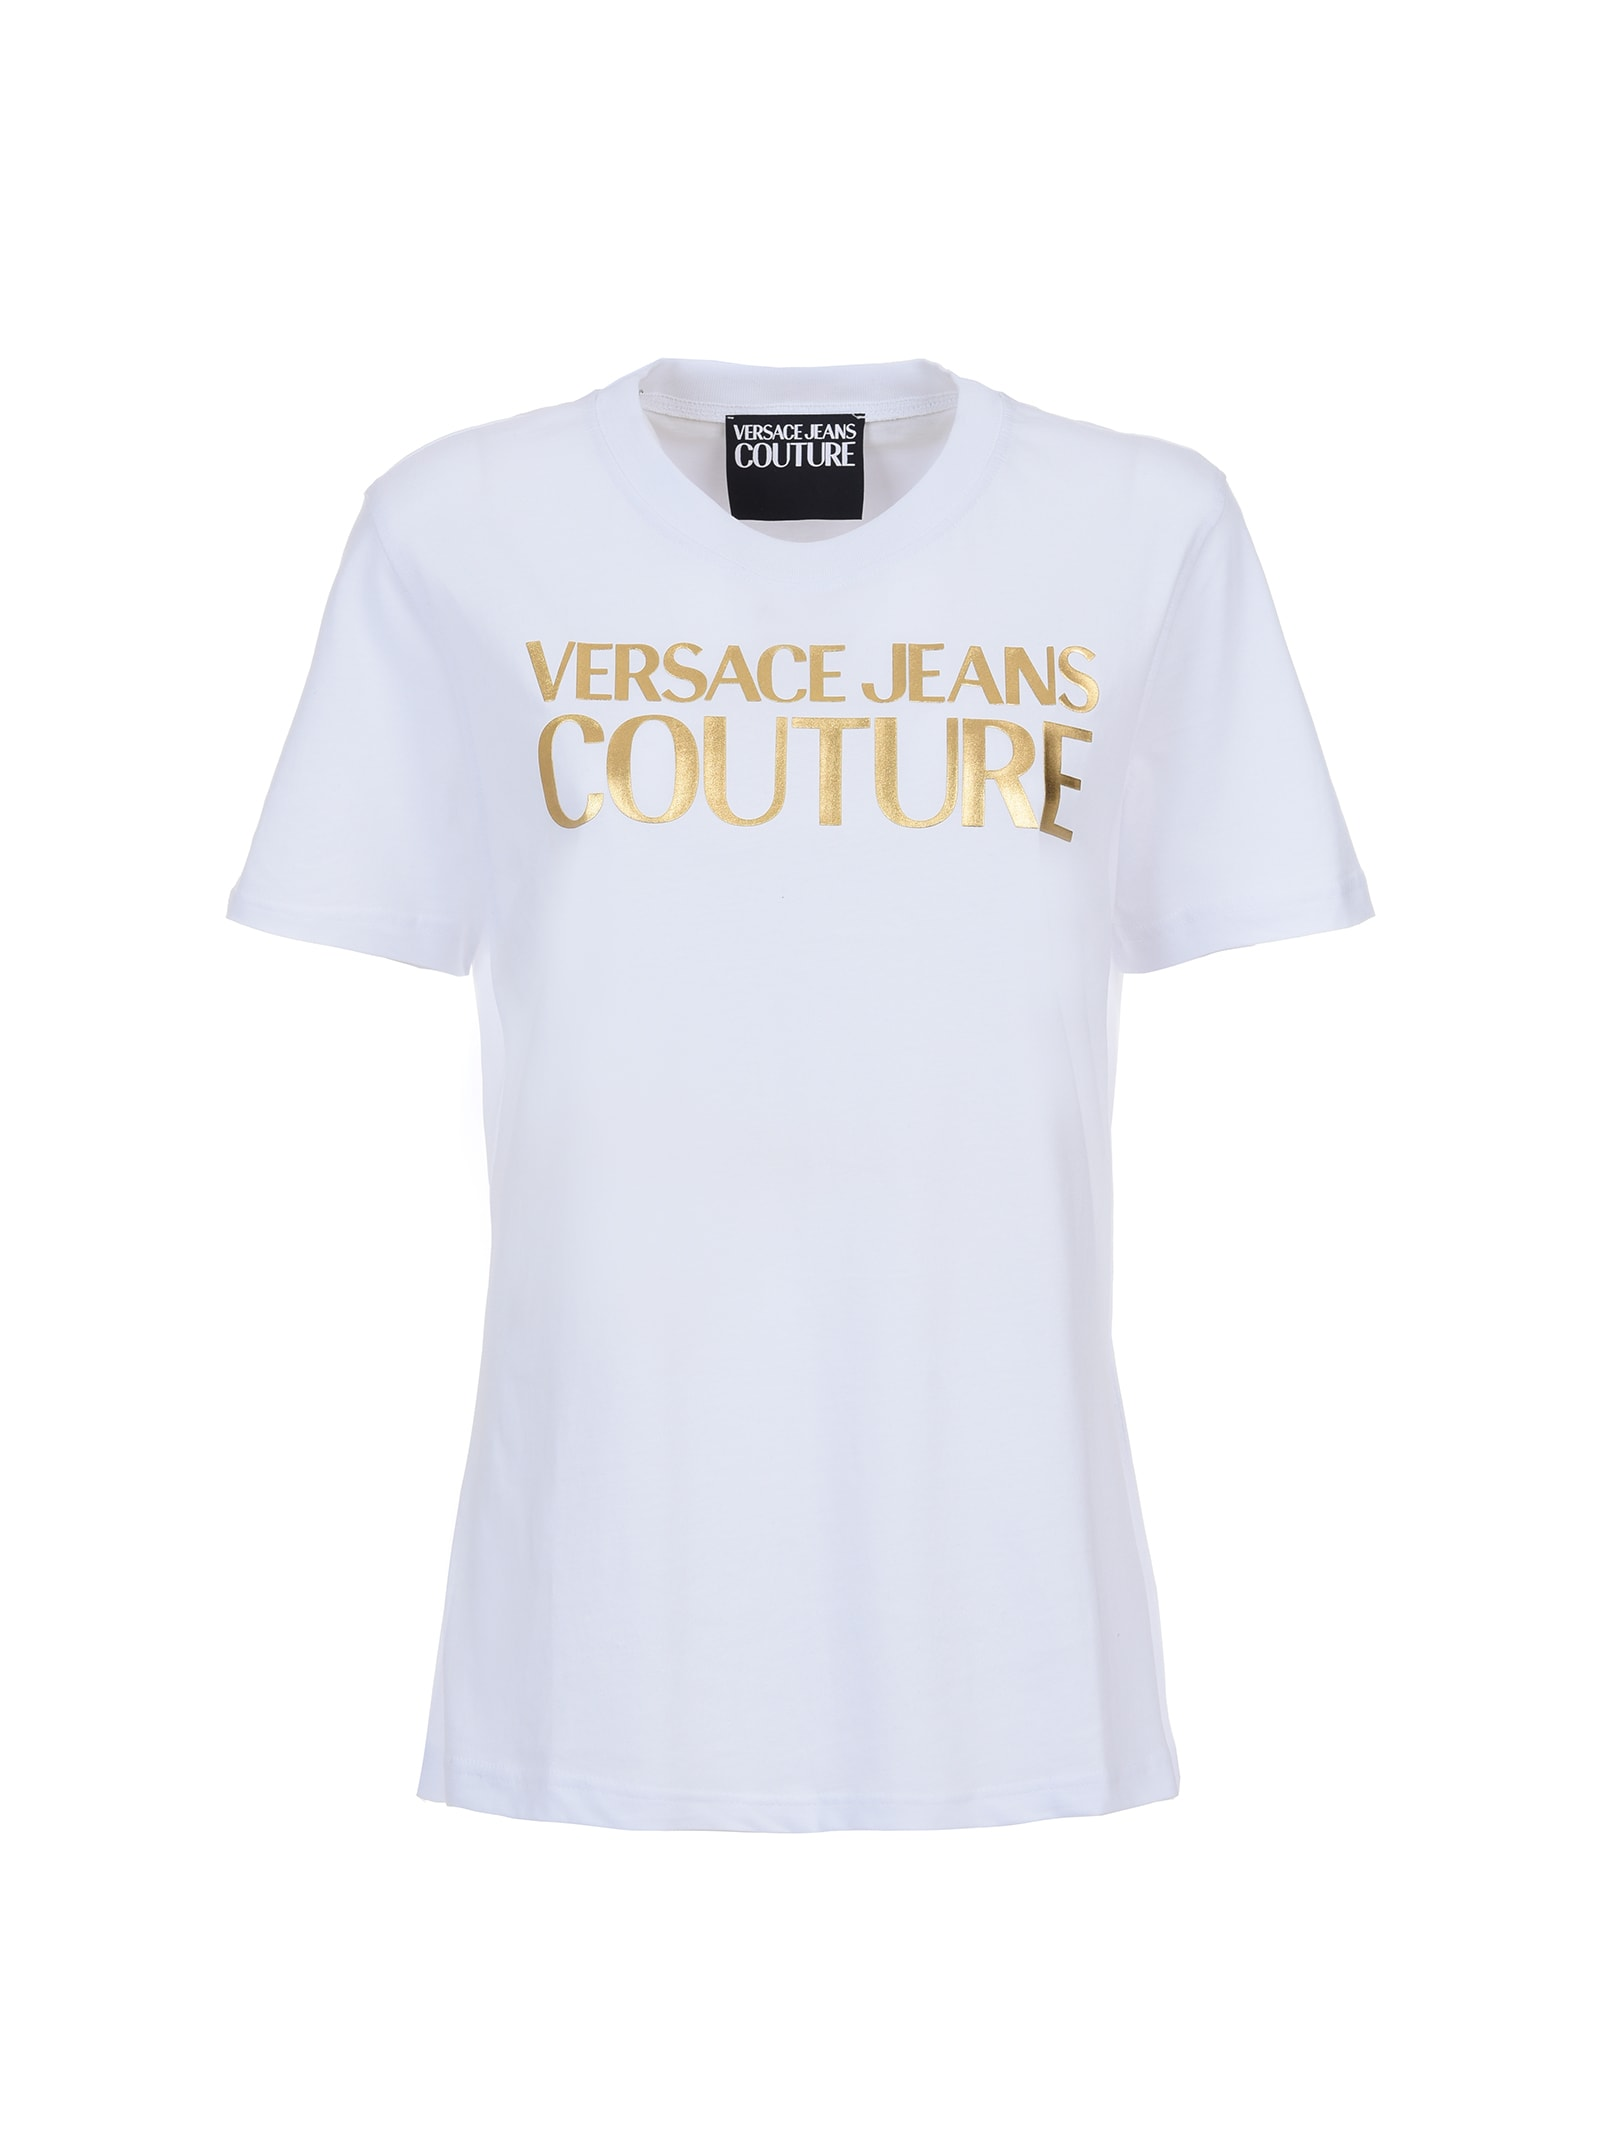 Versace Jeans Couture White T-shirt With Gold Logo In 003 + 948